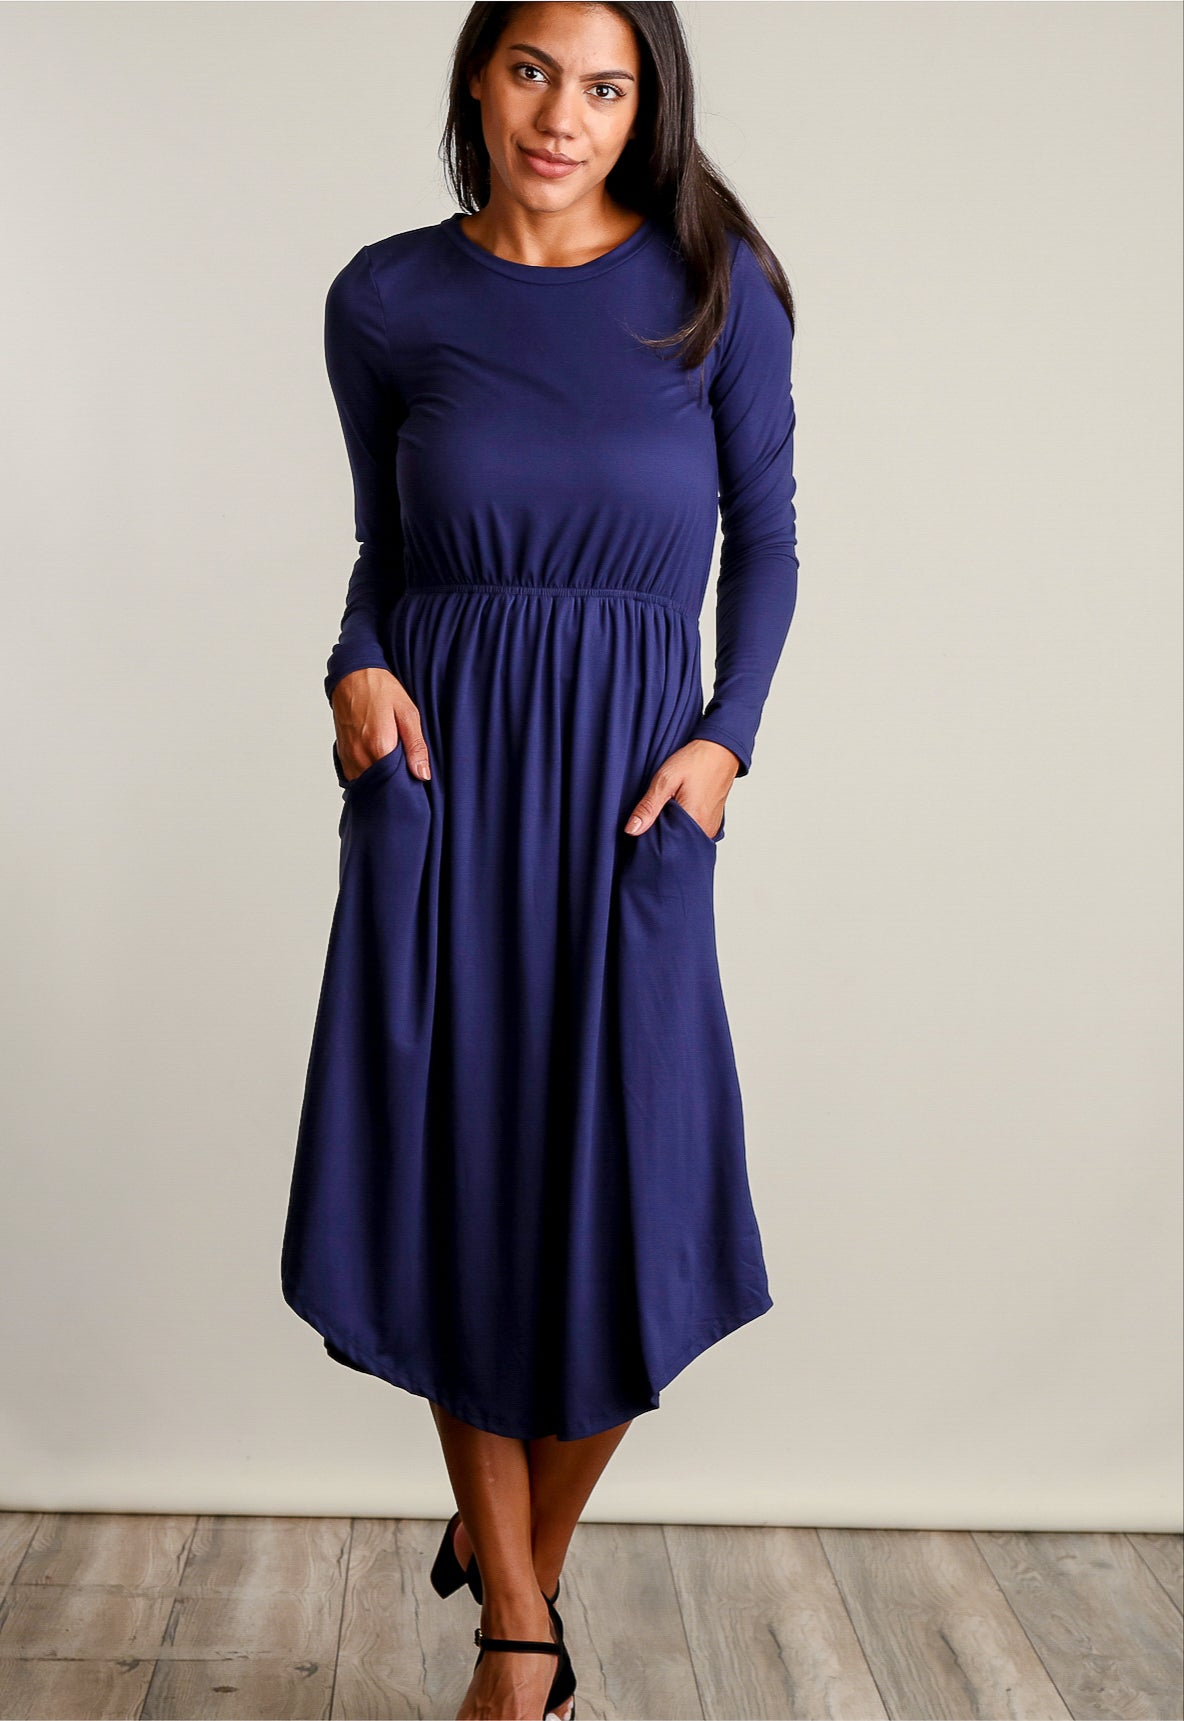 Navy Fit & Flare L/S Pocketed Dress